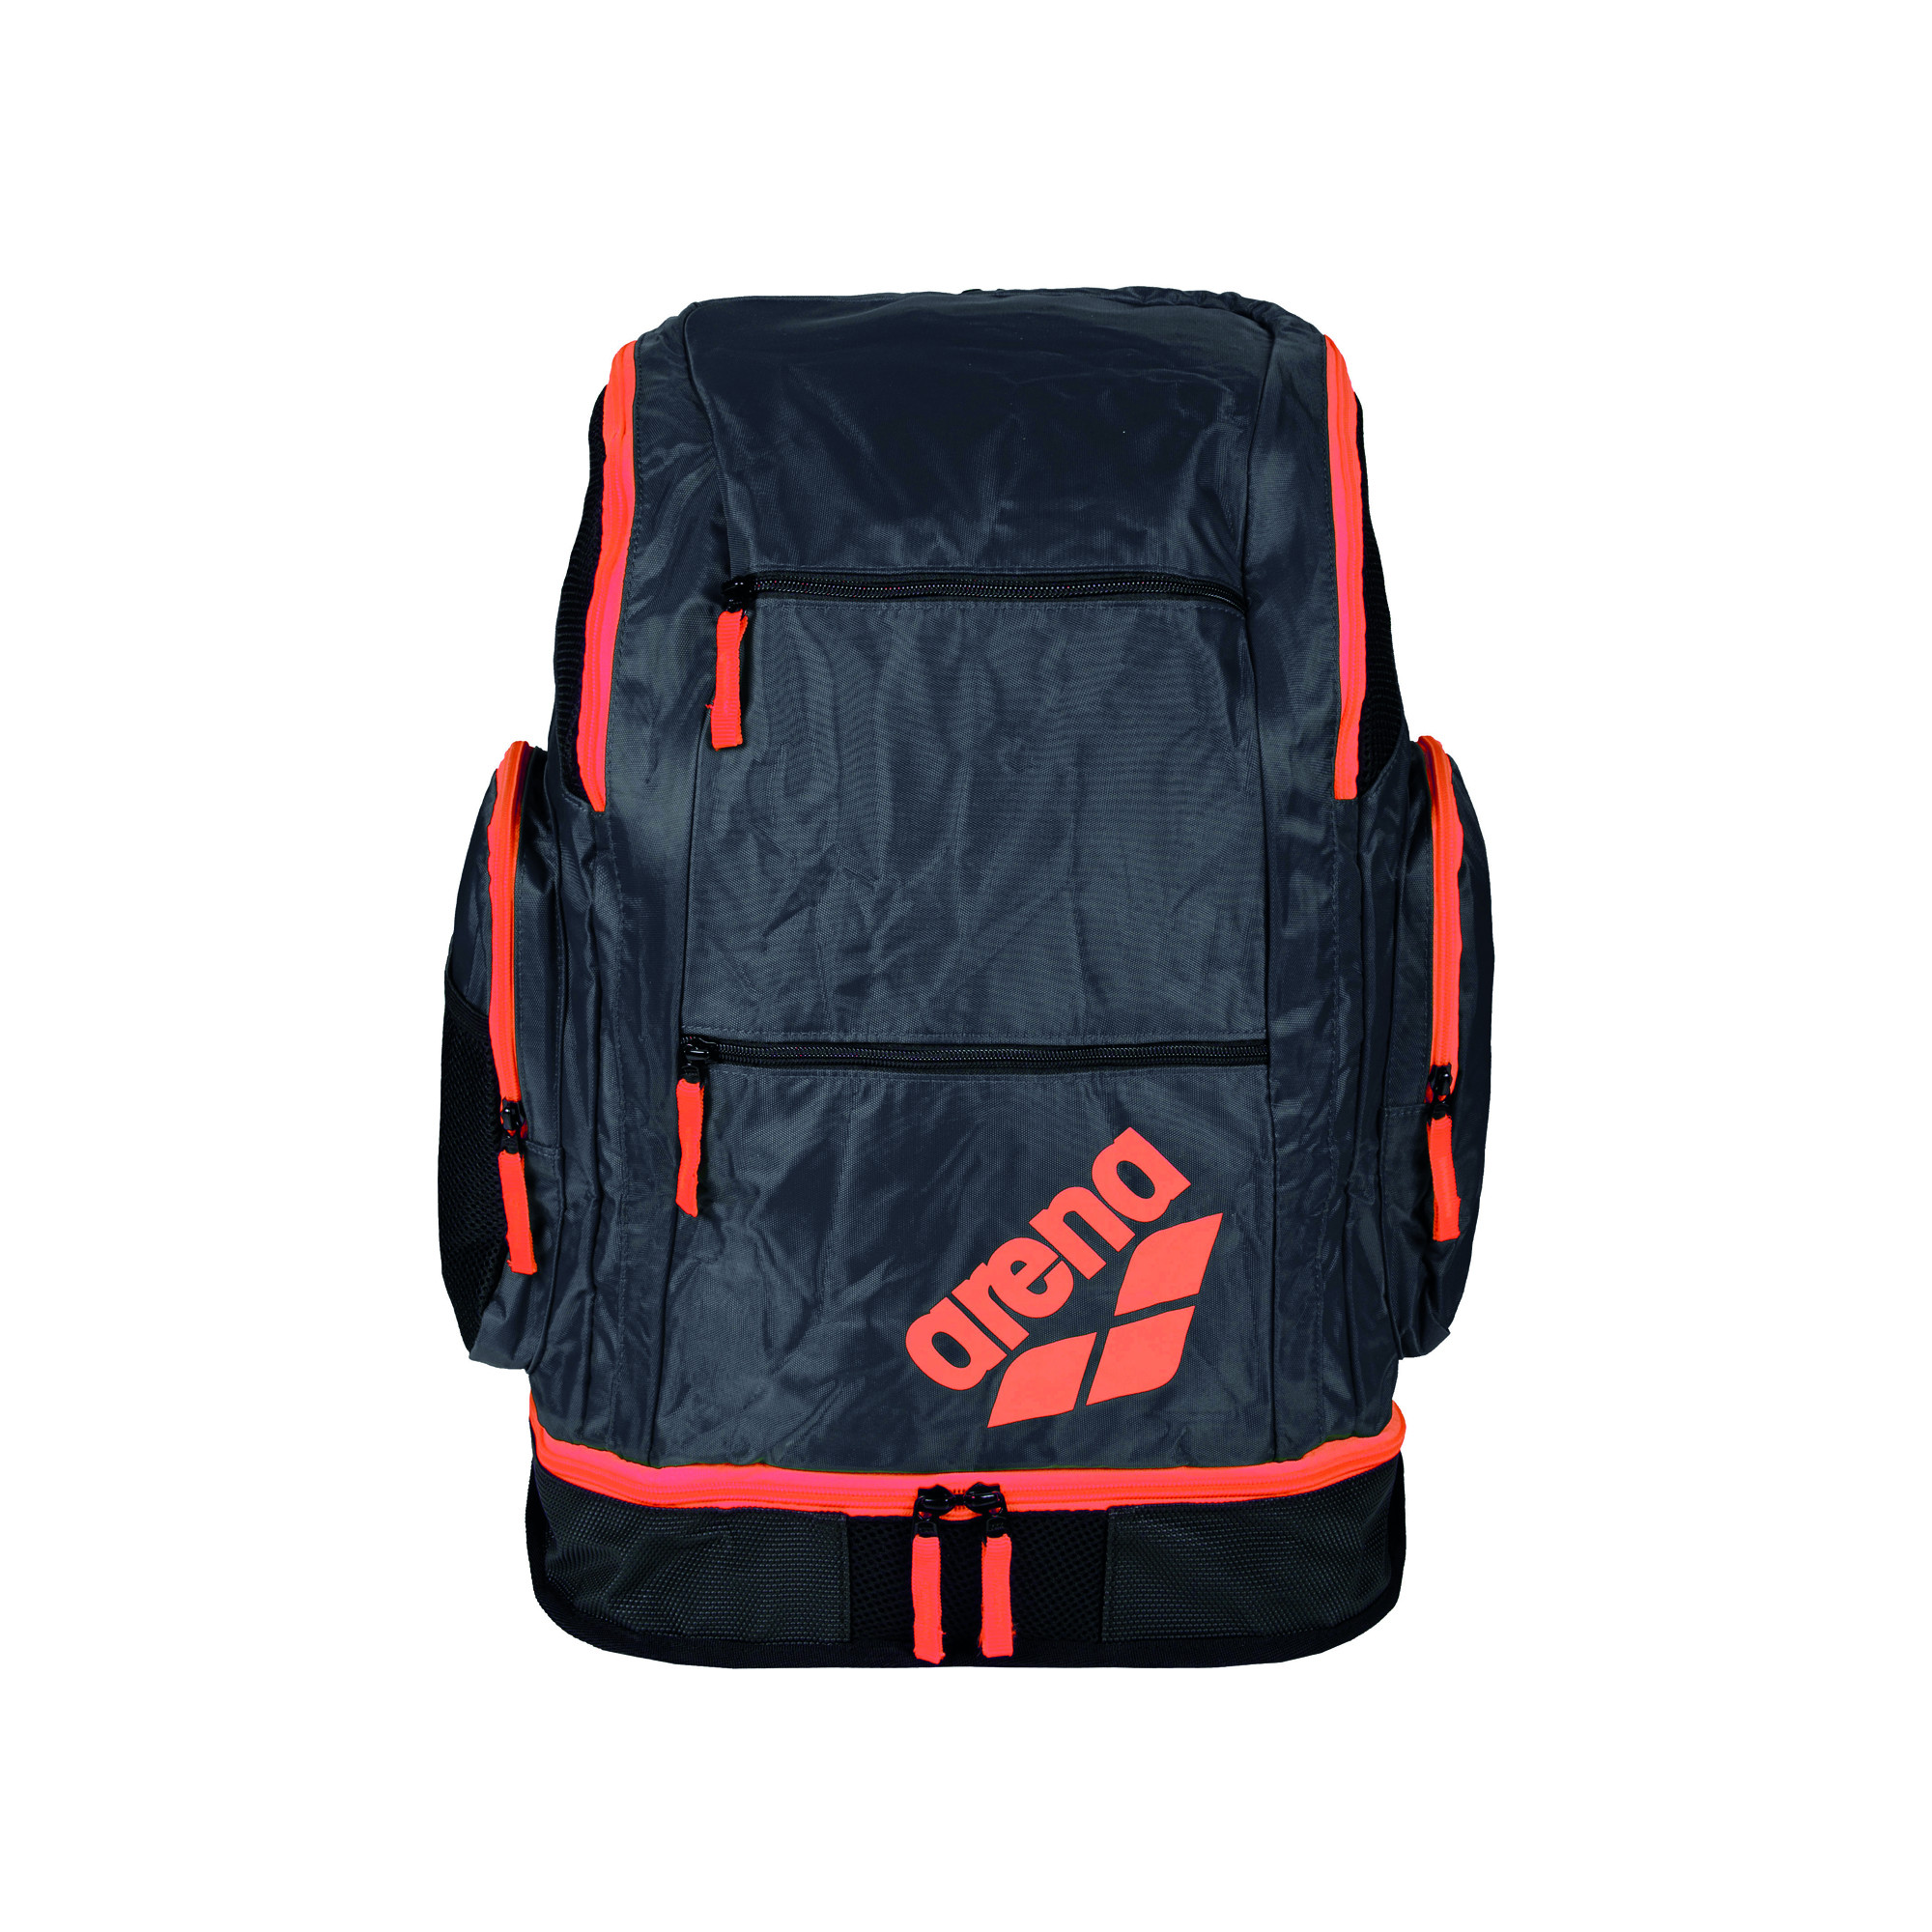 6a2c76f3ae Arena Spiky 2 Backpack - Ly Sports